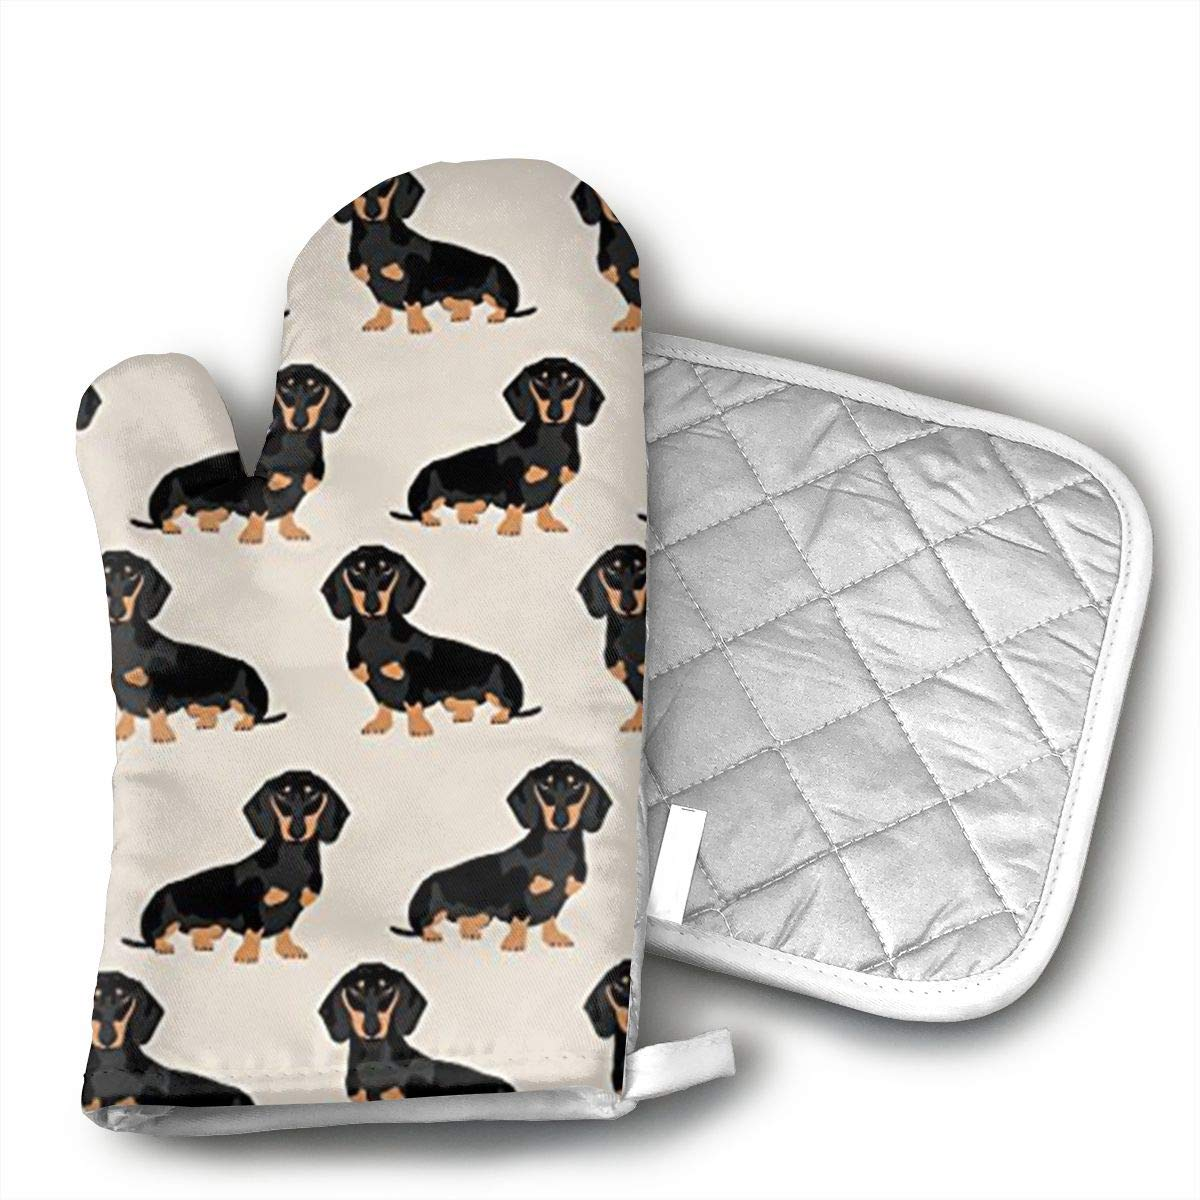 Xayeu Wiener Dog Fabric Doxie Dachshund Weiner Dog Pet Dogs Oven Mitts with Quilted Cotton Lining - Professional Heat Resistant Pot Holders